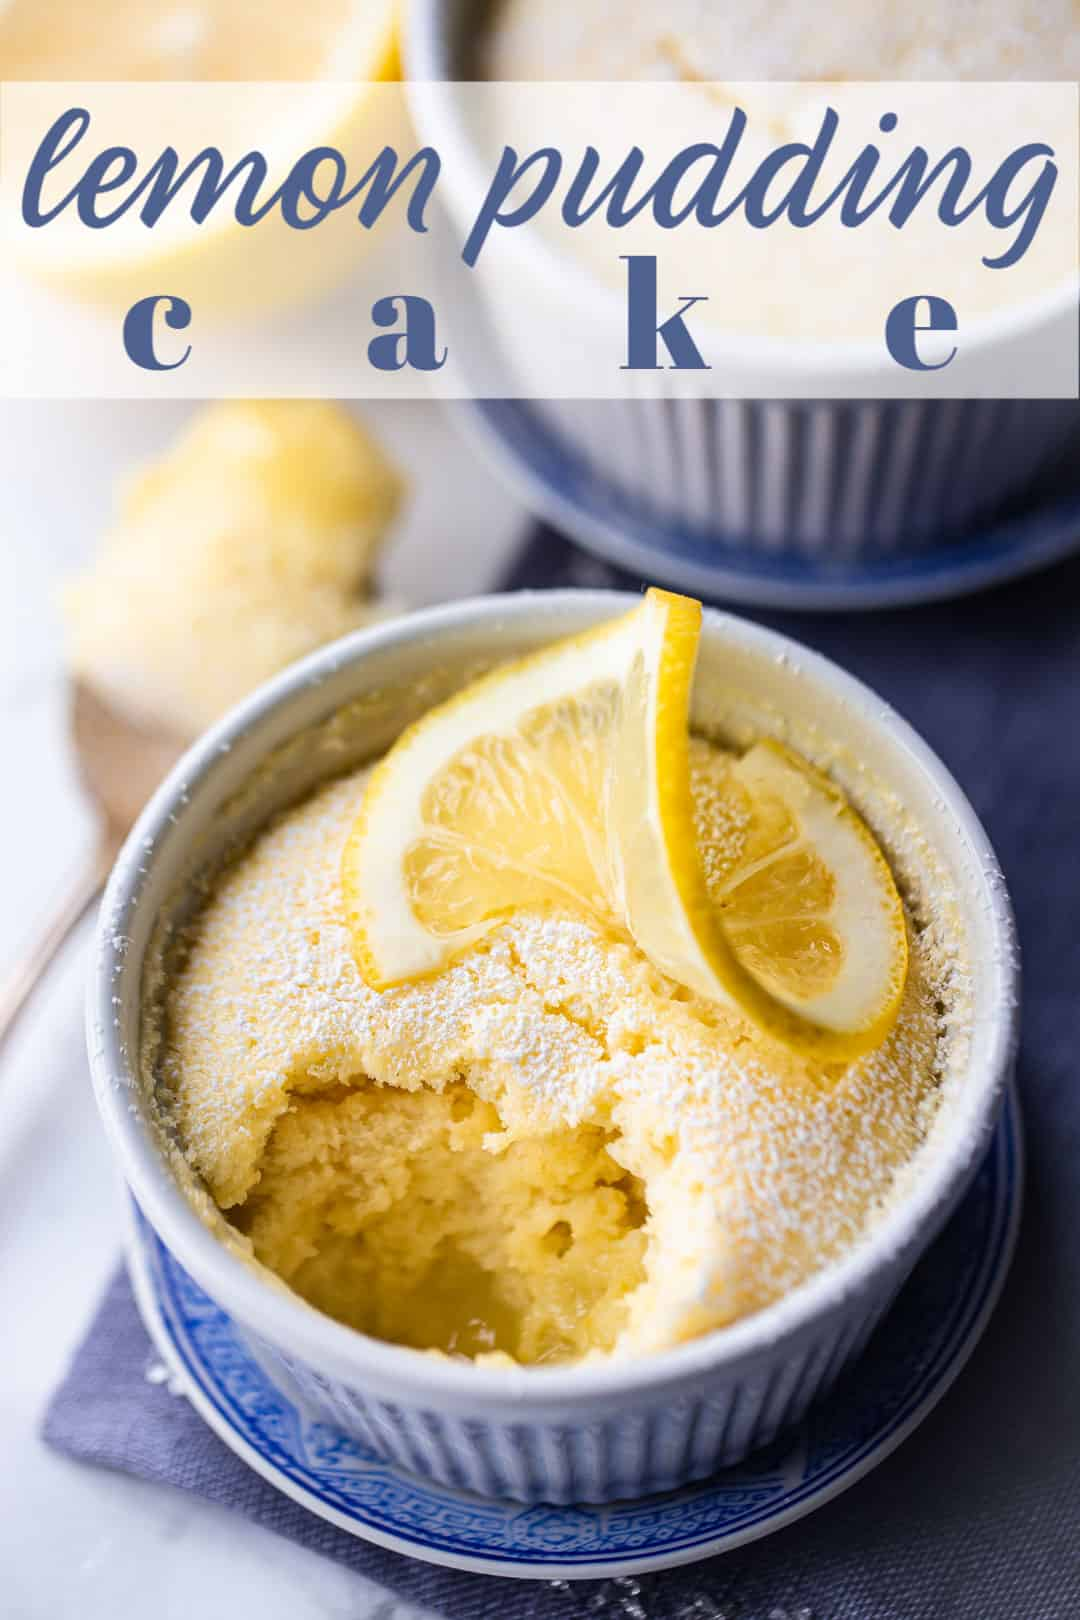 Lemon pudding cake recipe prepared in individual portions, with a fluffy top layer and a gooey sauce on the bottom.